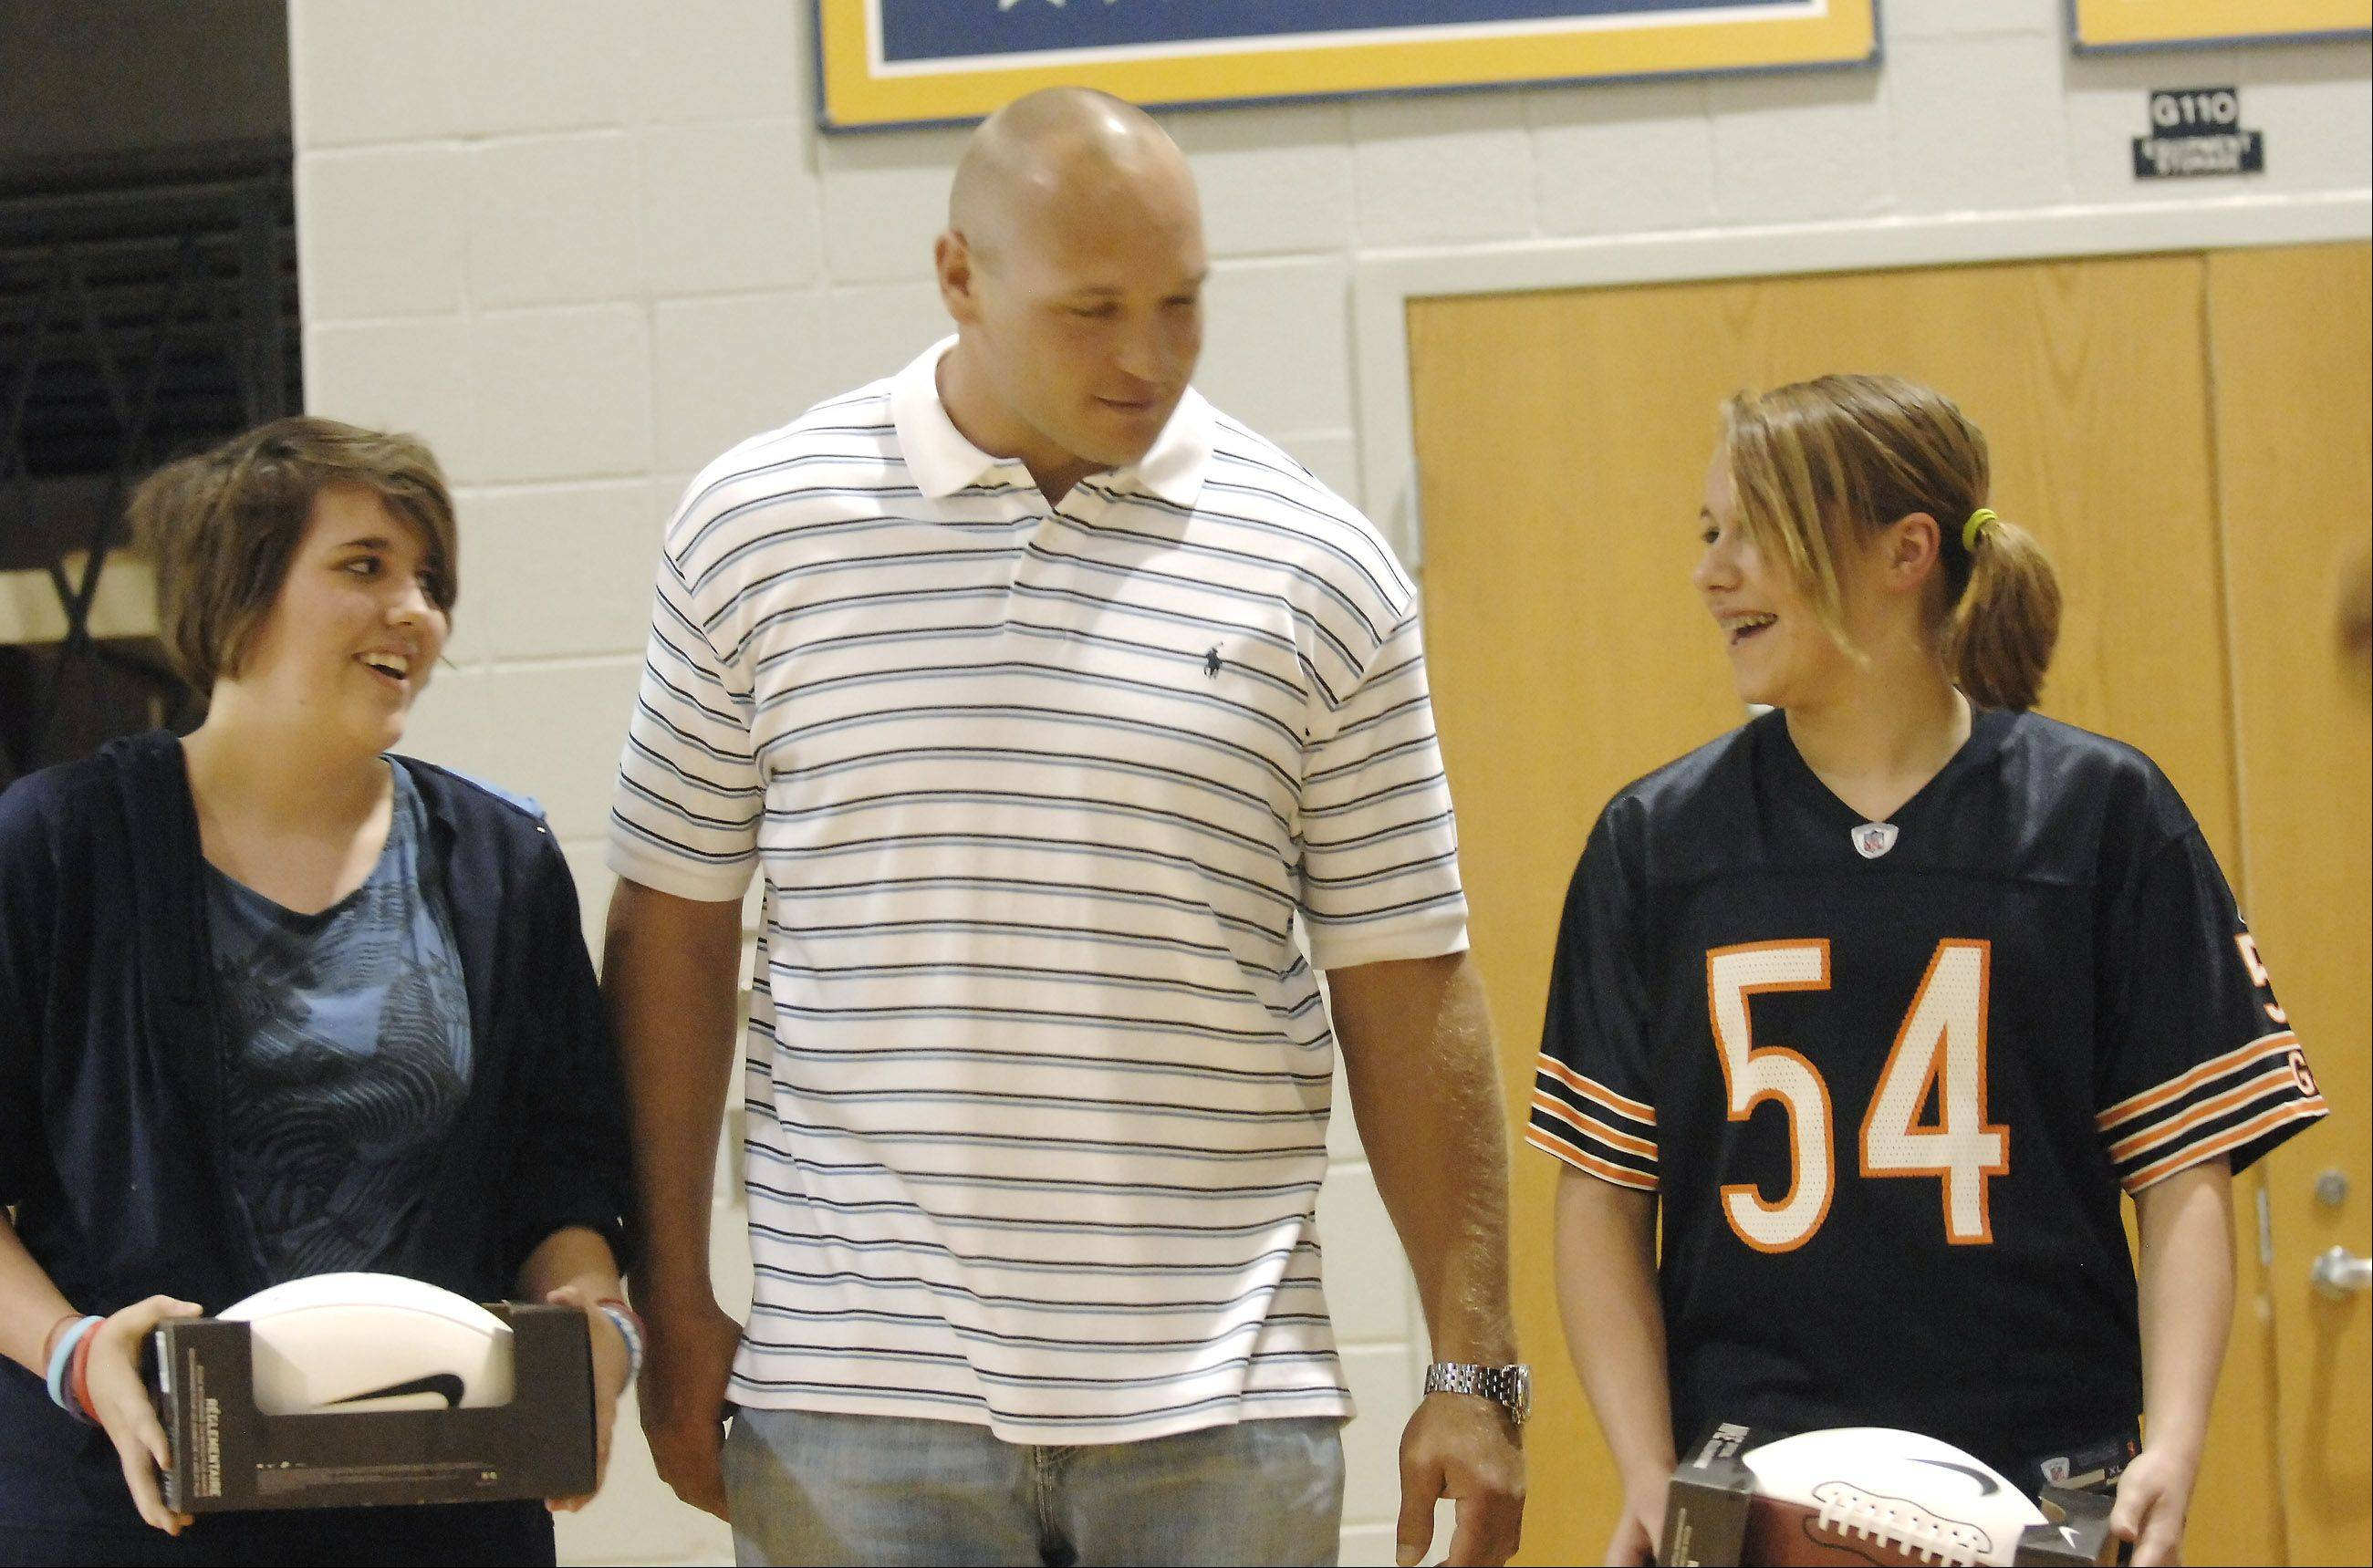 Top fundraisers Katie Baker, left, and Rehann Schleiter, right, received footballs from Brian Urlacher, center. Chicago Bears' Brian Urlacher made a surprise visit to Granger Middle School in Aurora to pass out awards to winners in the school's Football For The Heart program and medals to Special Olympians from competition earlier in the month.